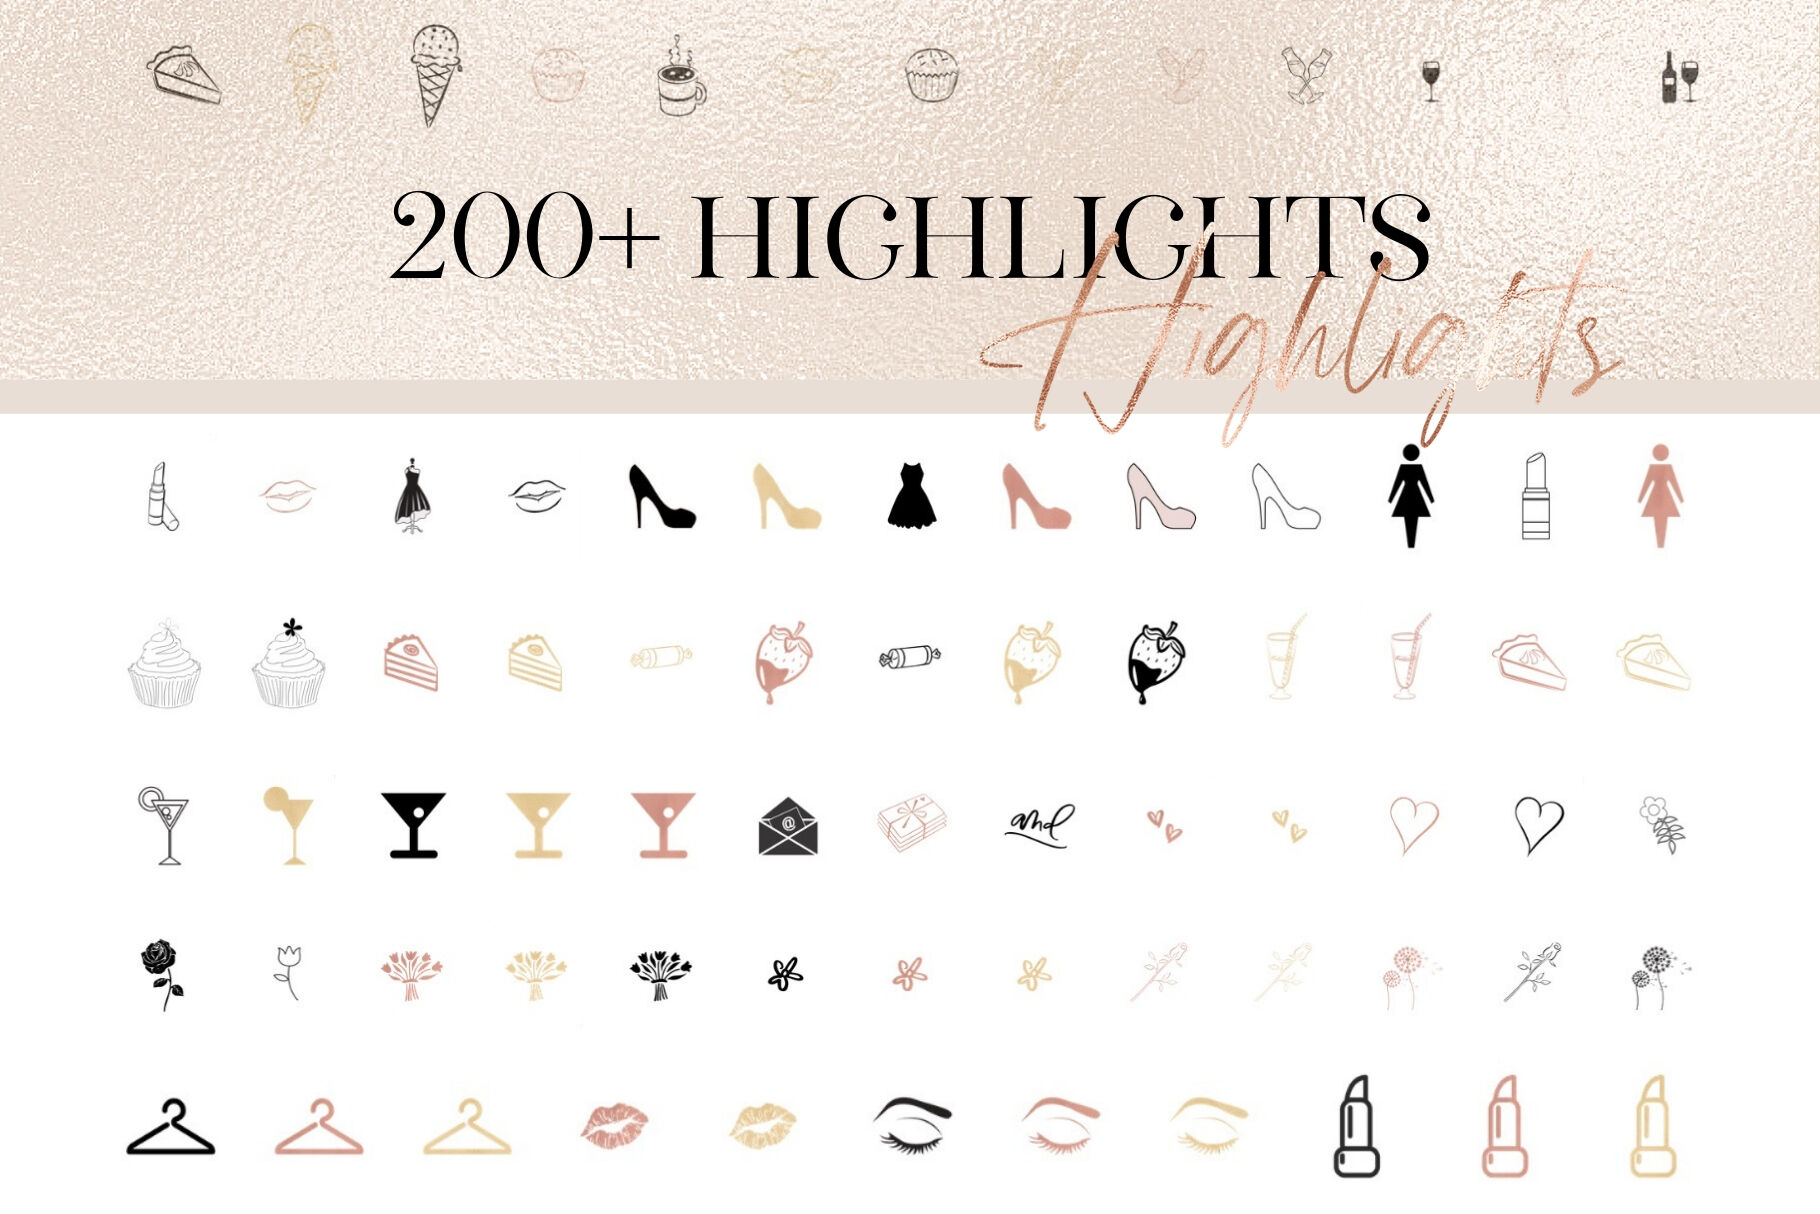 Instagram Highlight Icons Transparent By Creative Stash